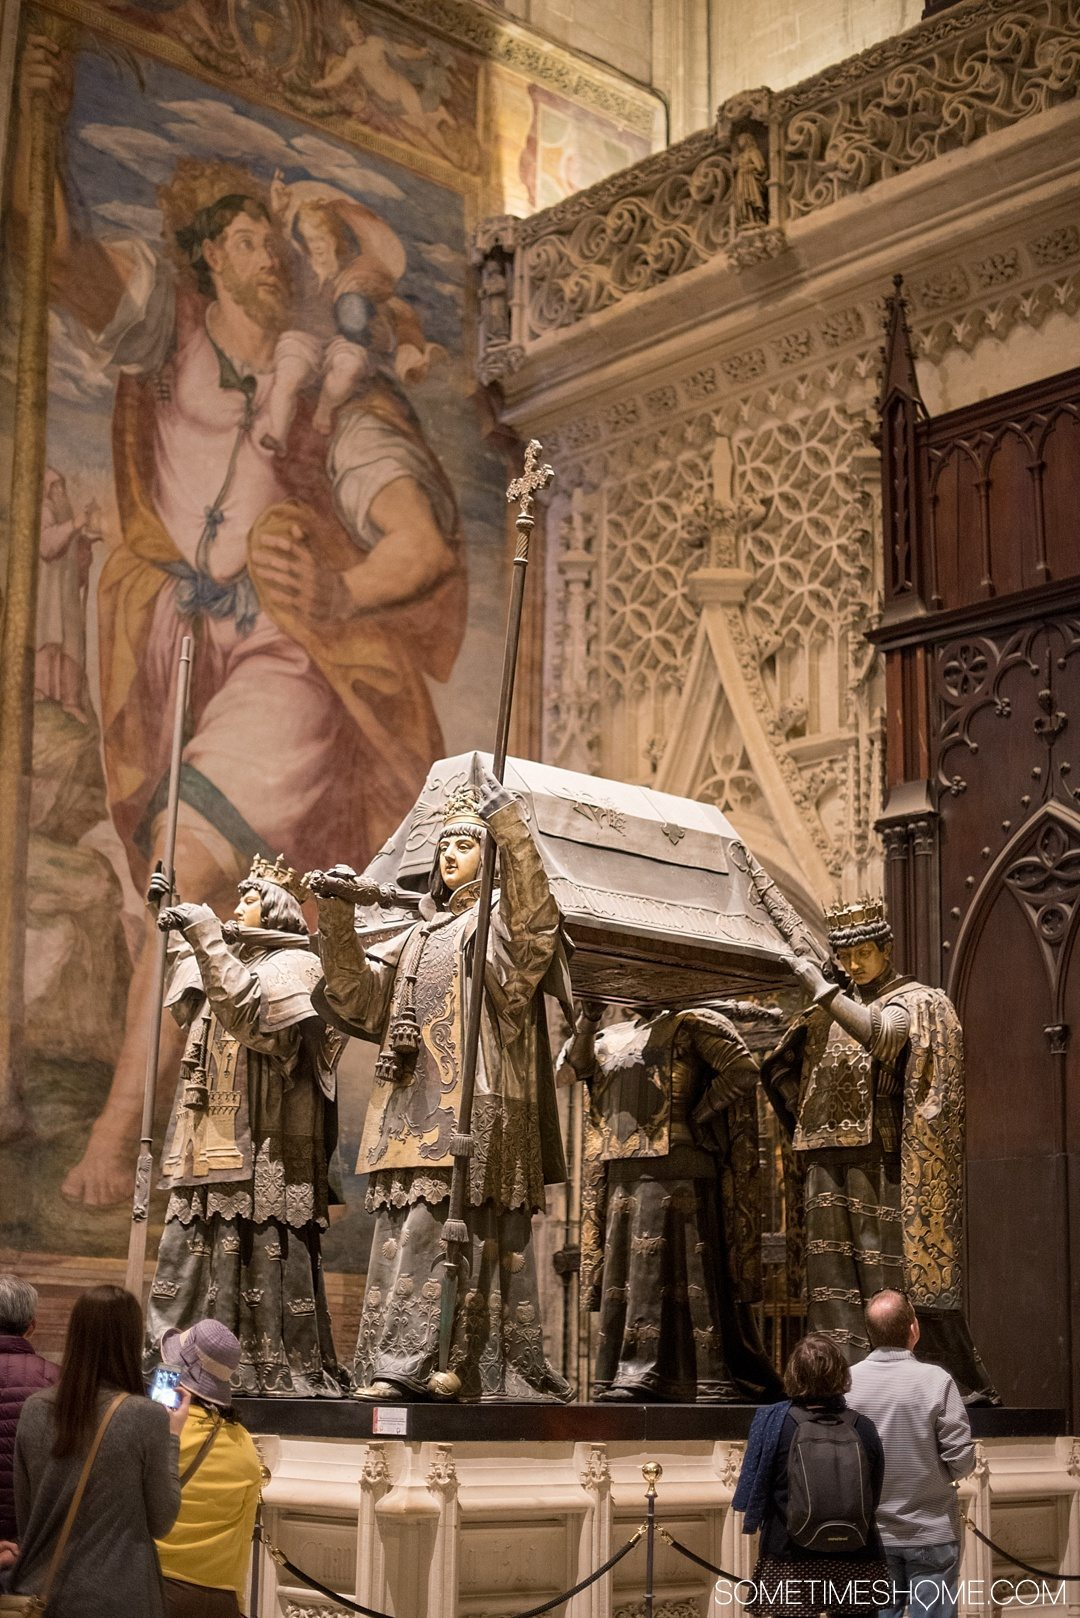 You Haven't Seen Seville Until You've Visited These 3 Sites, by Sometimes Home travel blog. Photo of Seville Cathedral's Christopher Columbus's tomb.